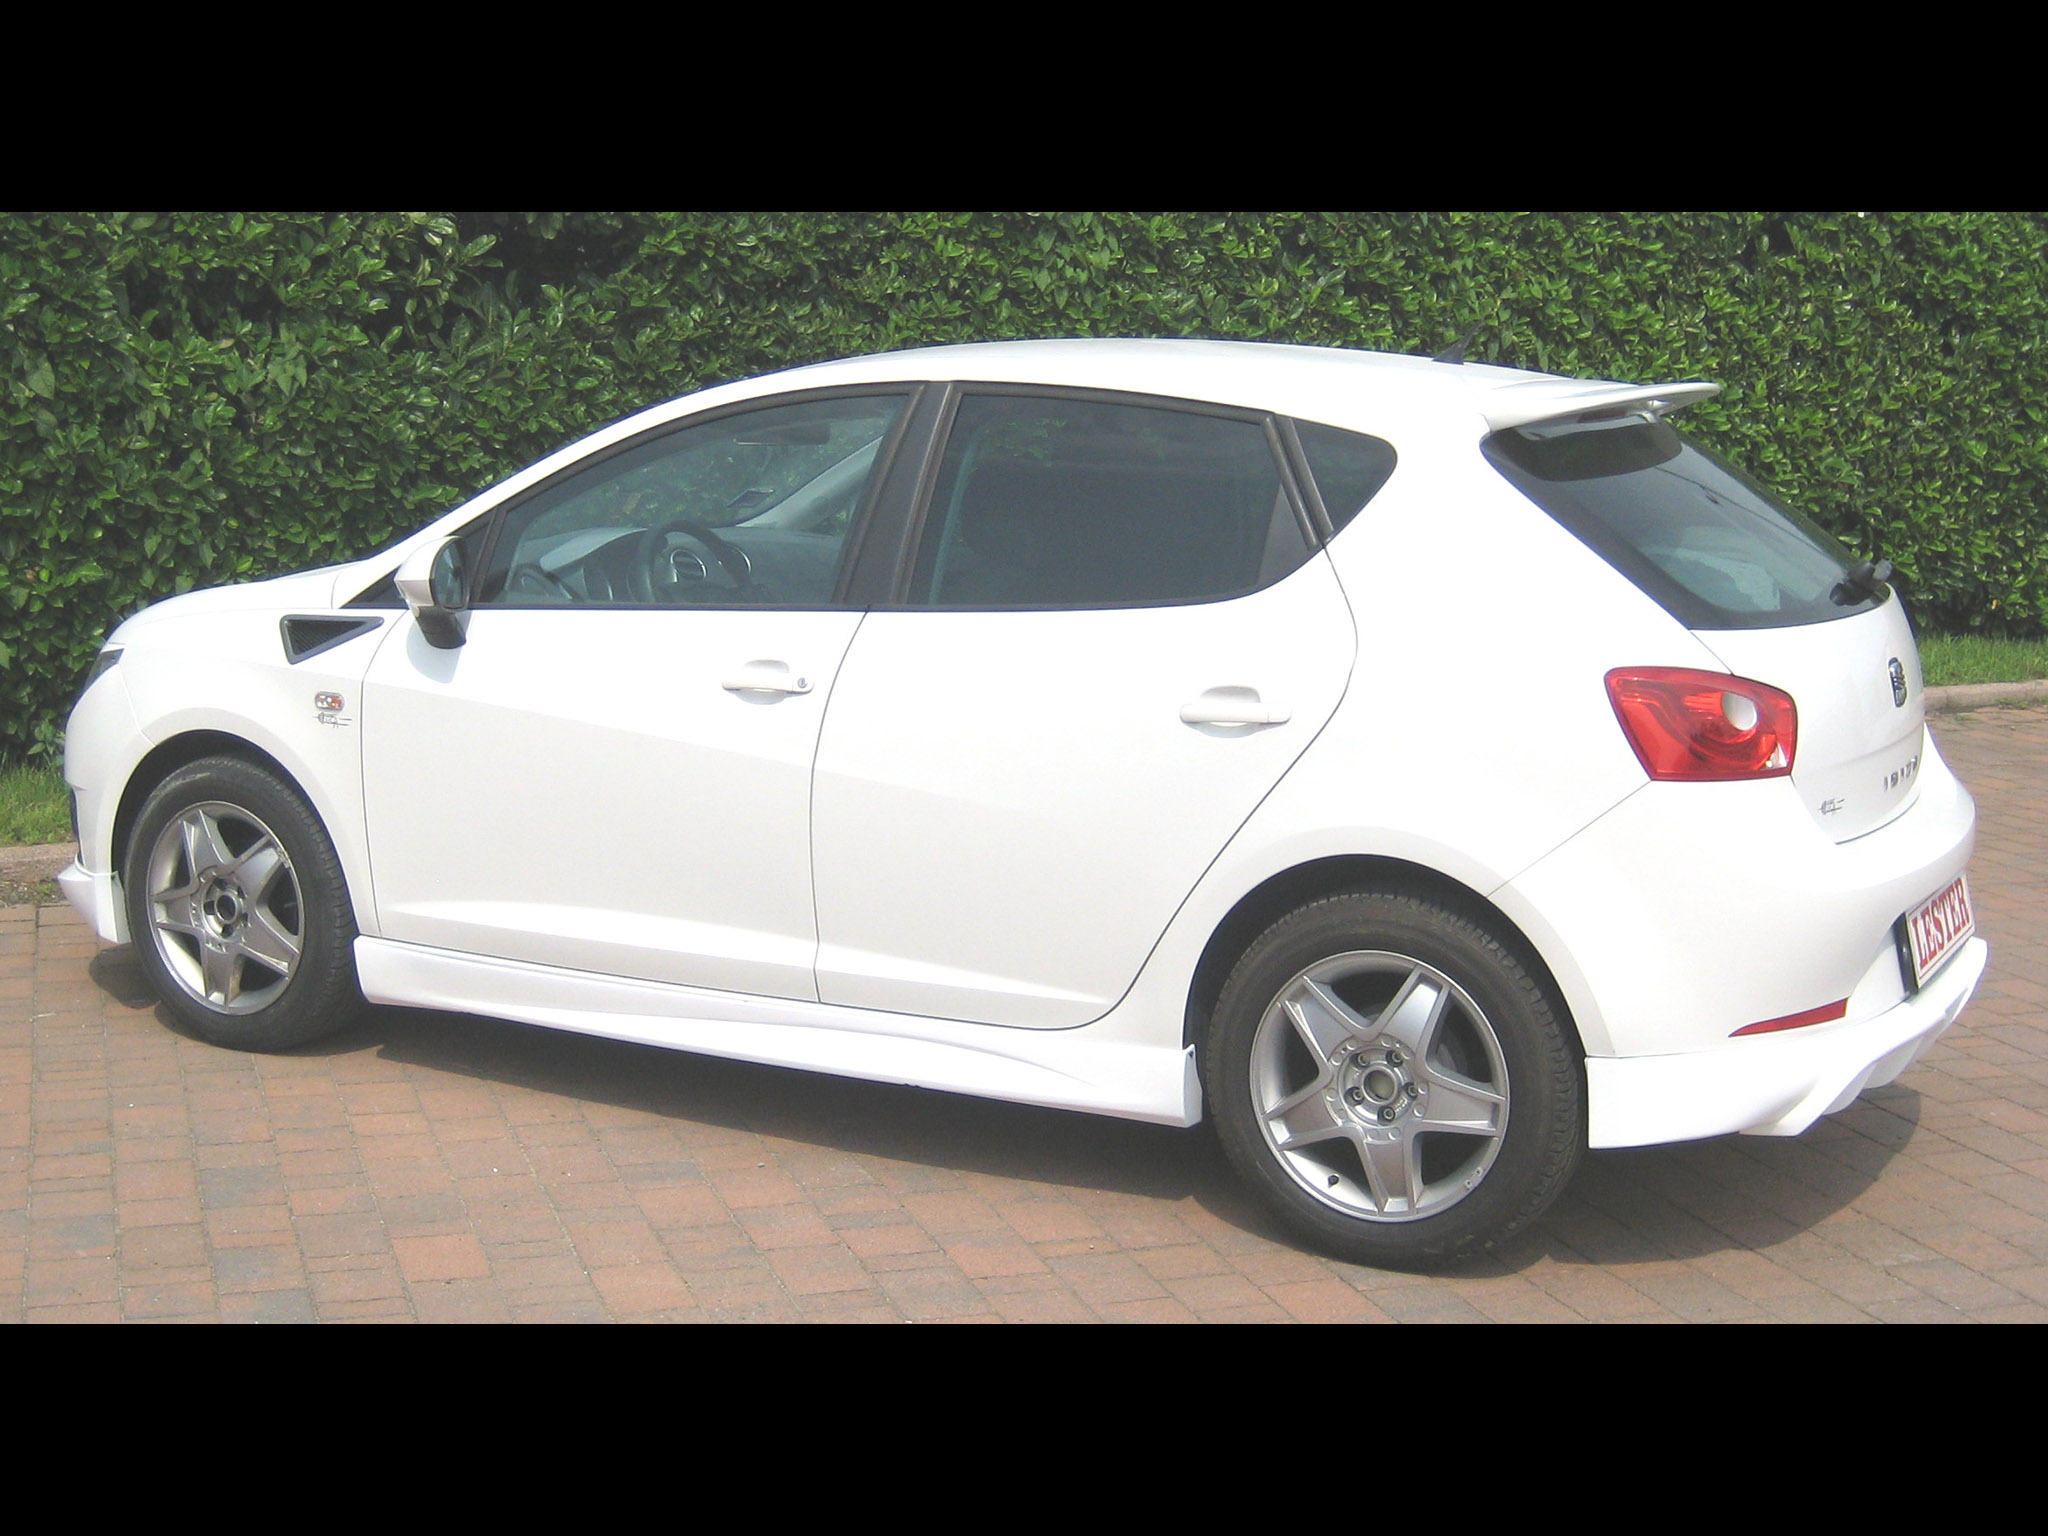 lester seat ibiza 6j 5 door 2010 lester seat ibiza 6j 5 door 2010 photo 3 car in pictures. Black Bedroom Furniture Sets. Home Design Ideas